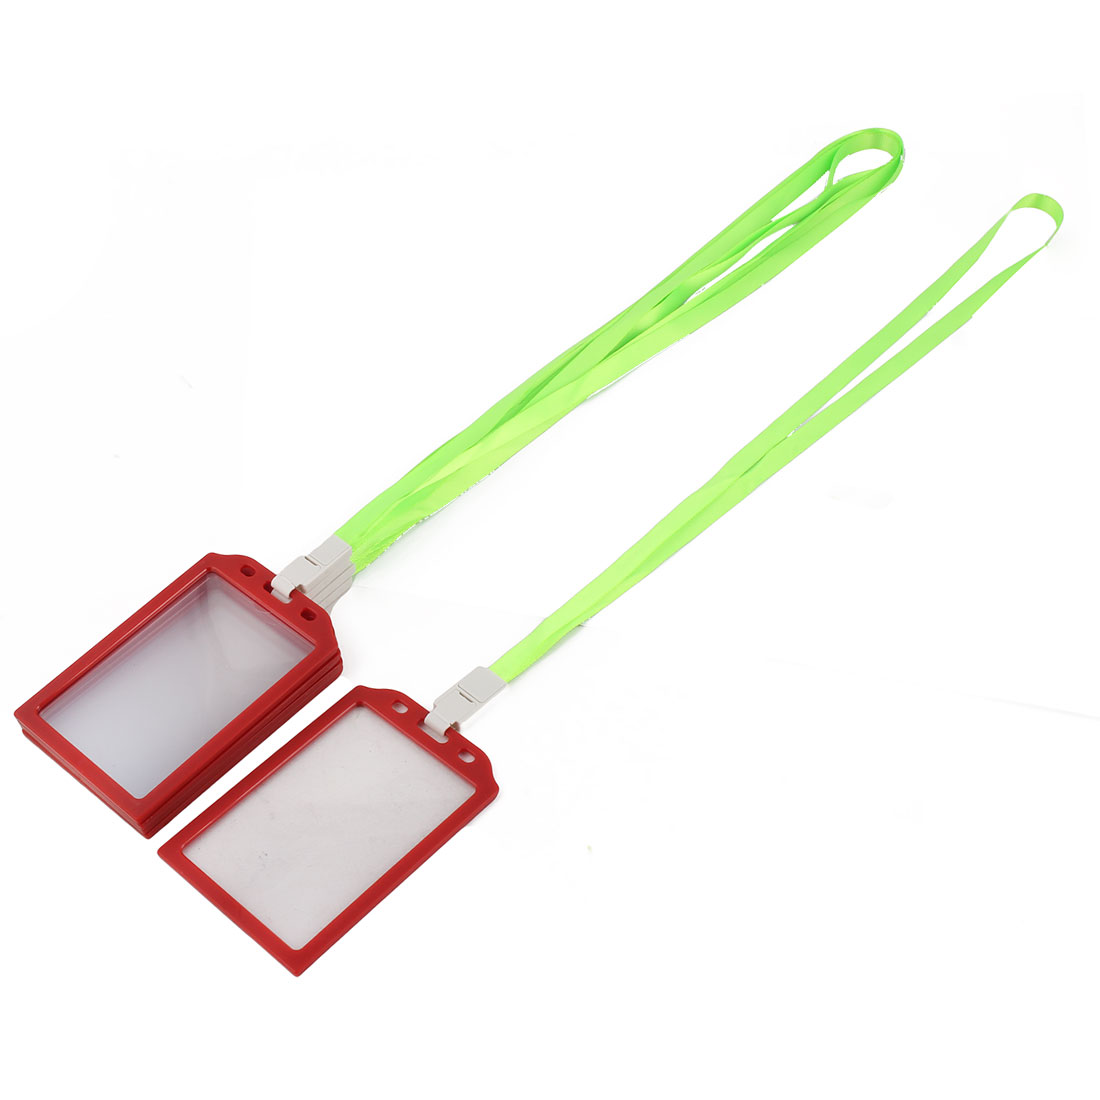 Company School Plastic Rectangle Name ID Card Tag Badge Holder Container Light Green 5 Pcs